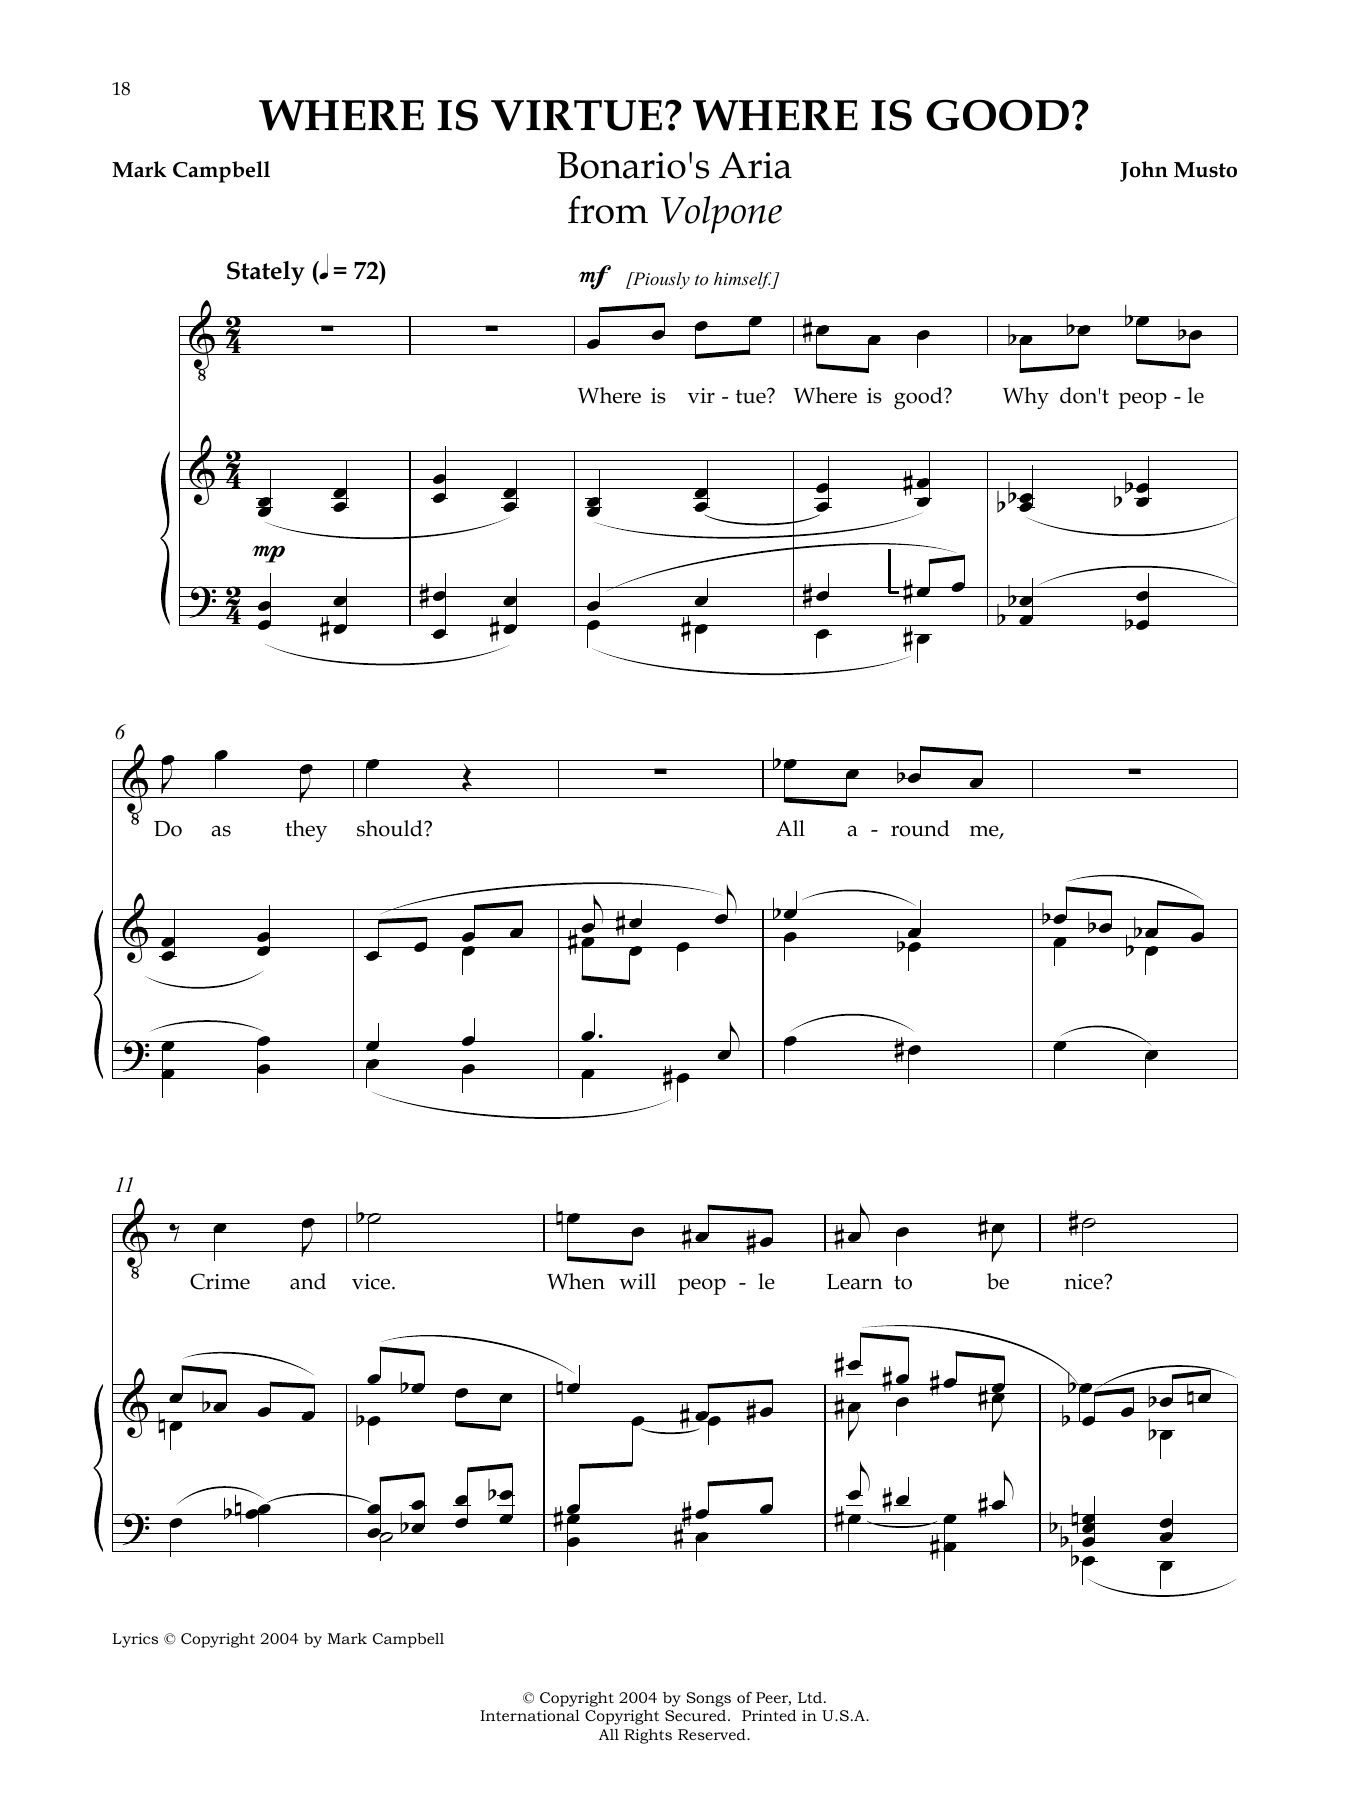 Where Is Virtue? Where Is Good? Sheet Music